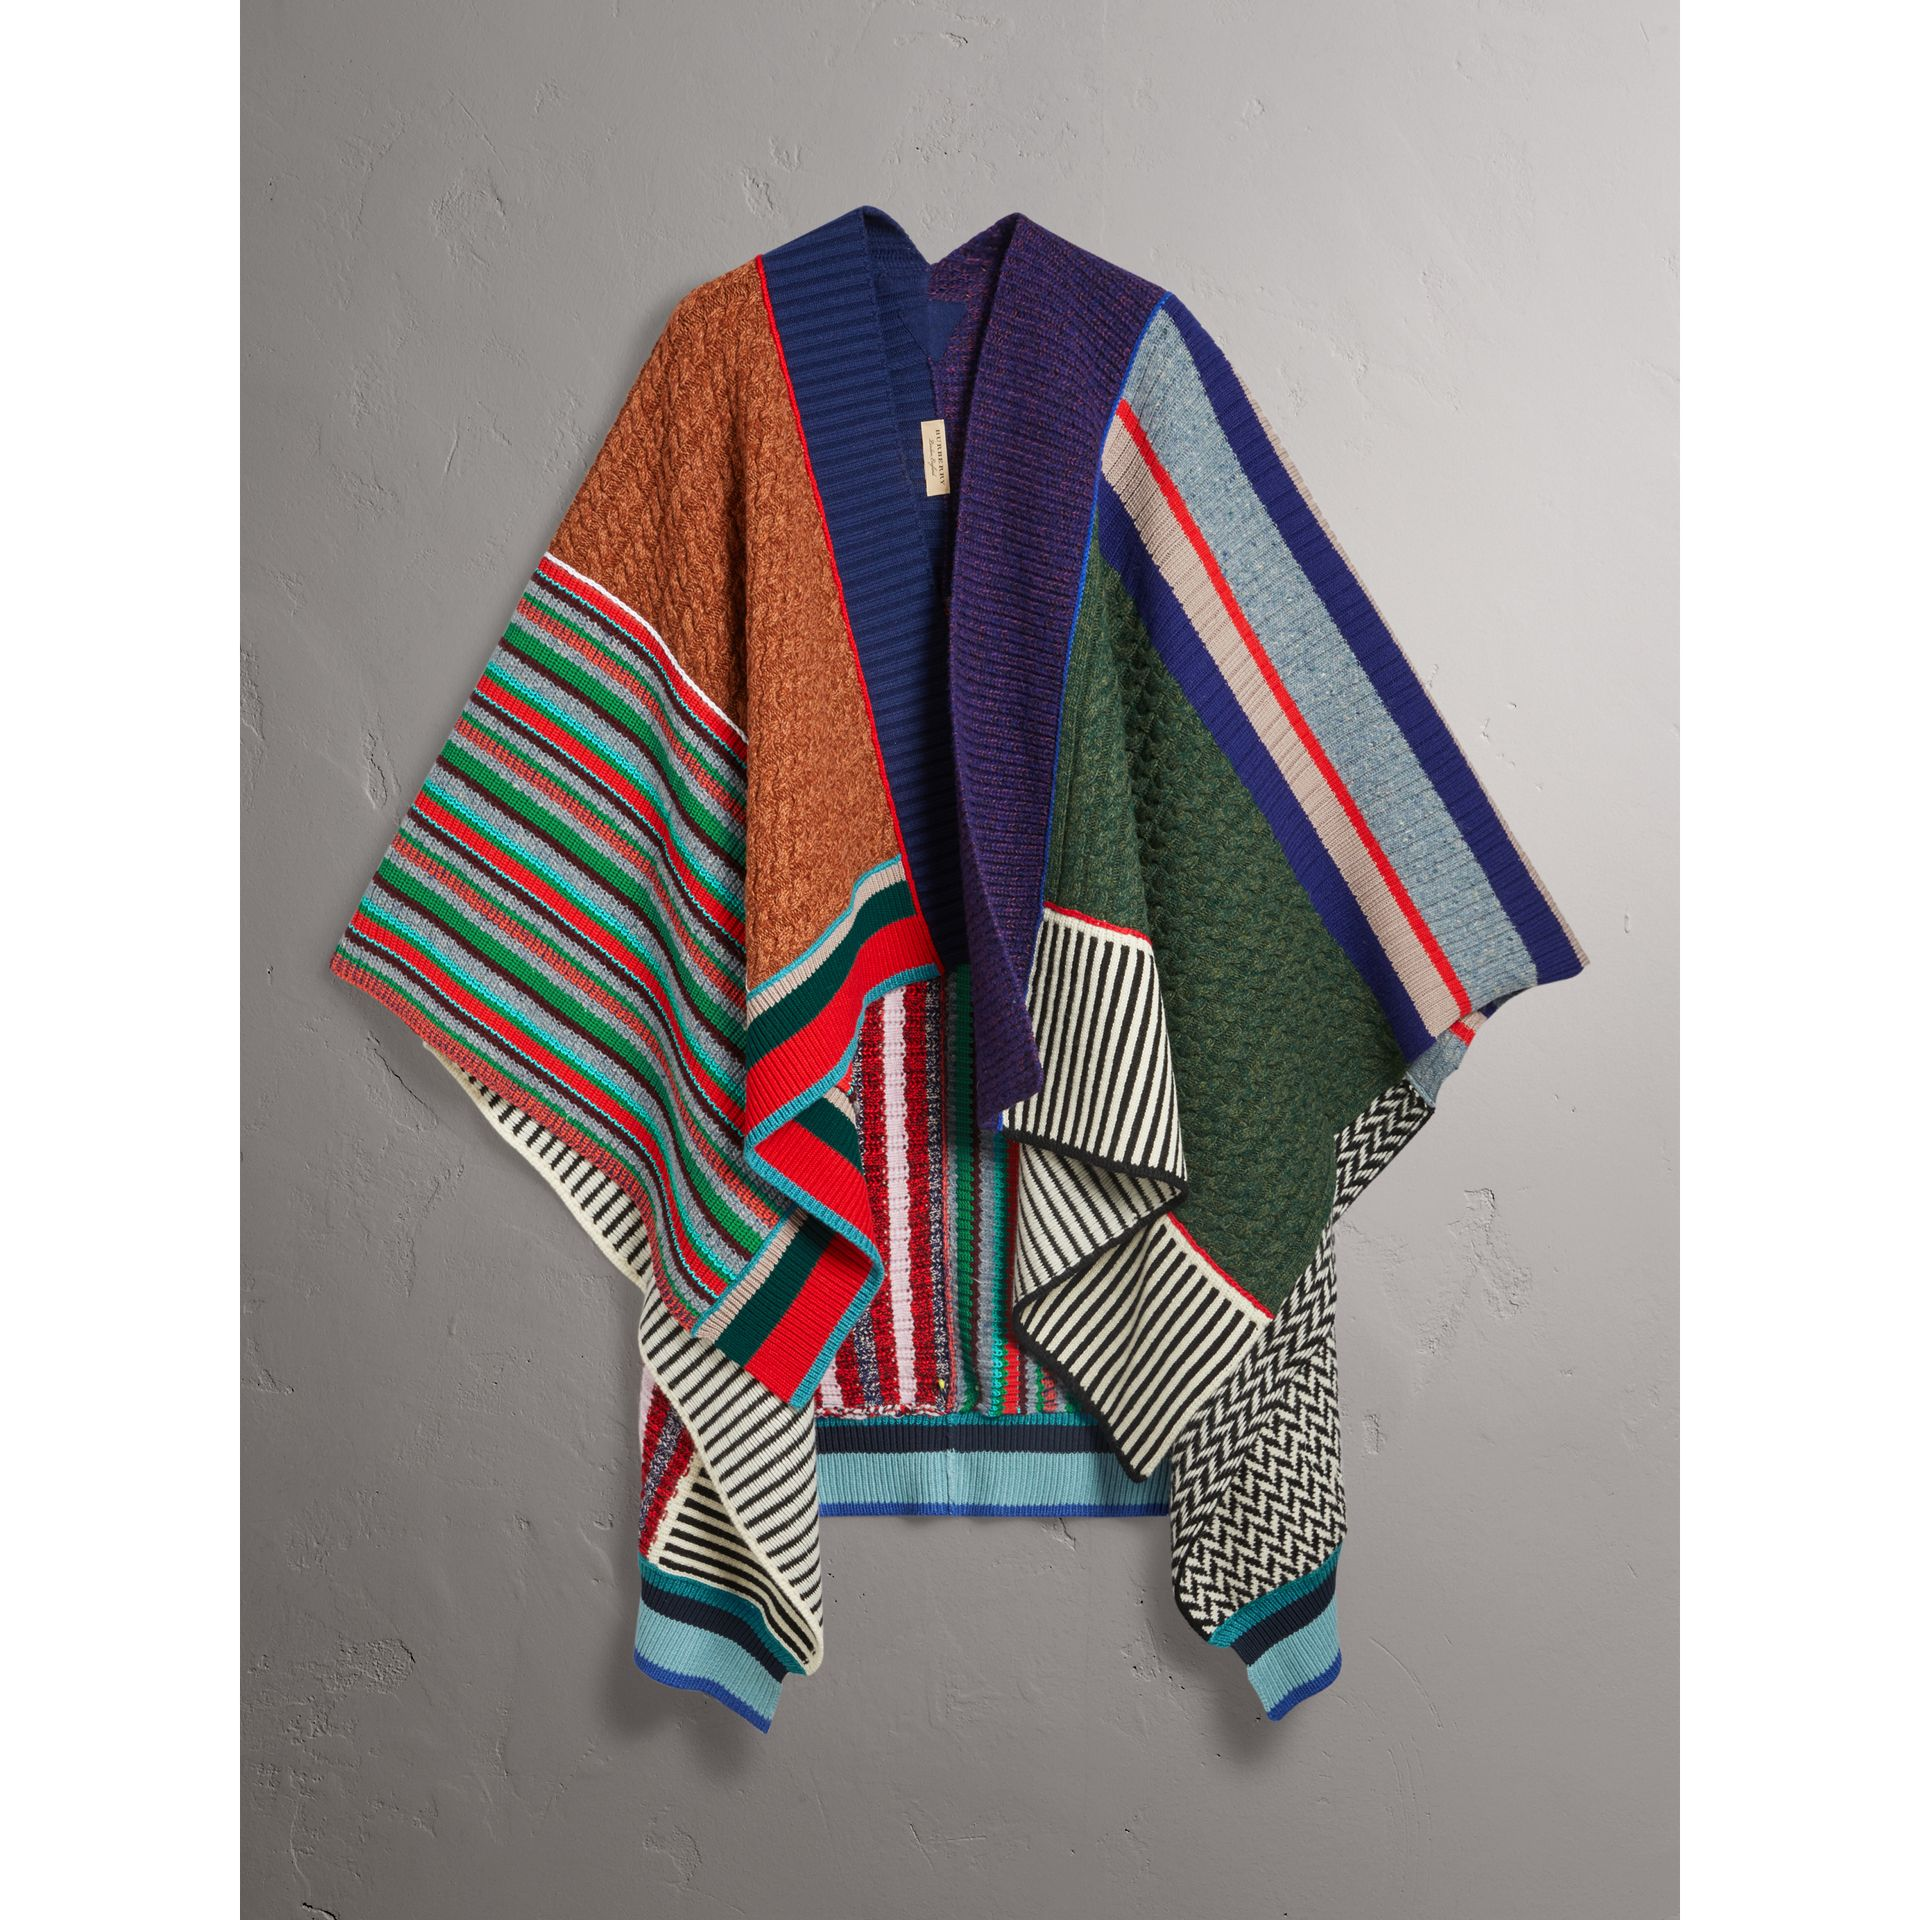 Wool Cashmere Blend Patchwork Poncho in Multicolour - Women | Burberry - gallery image 3